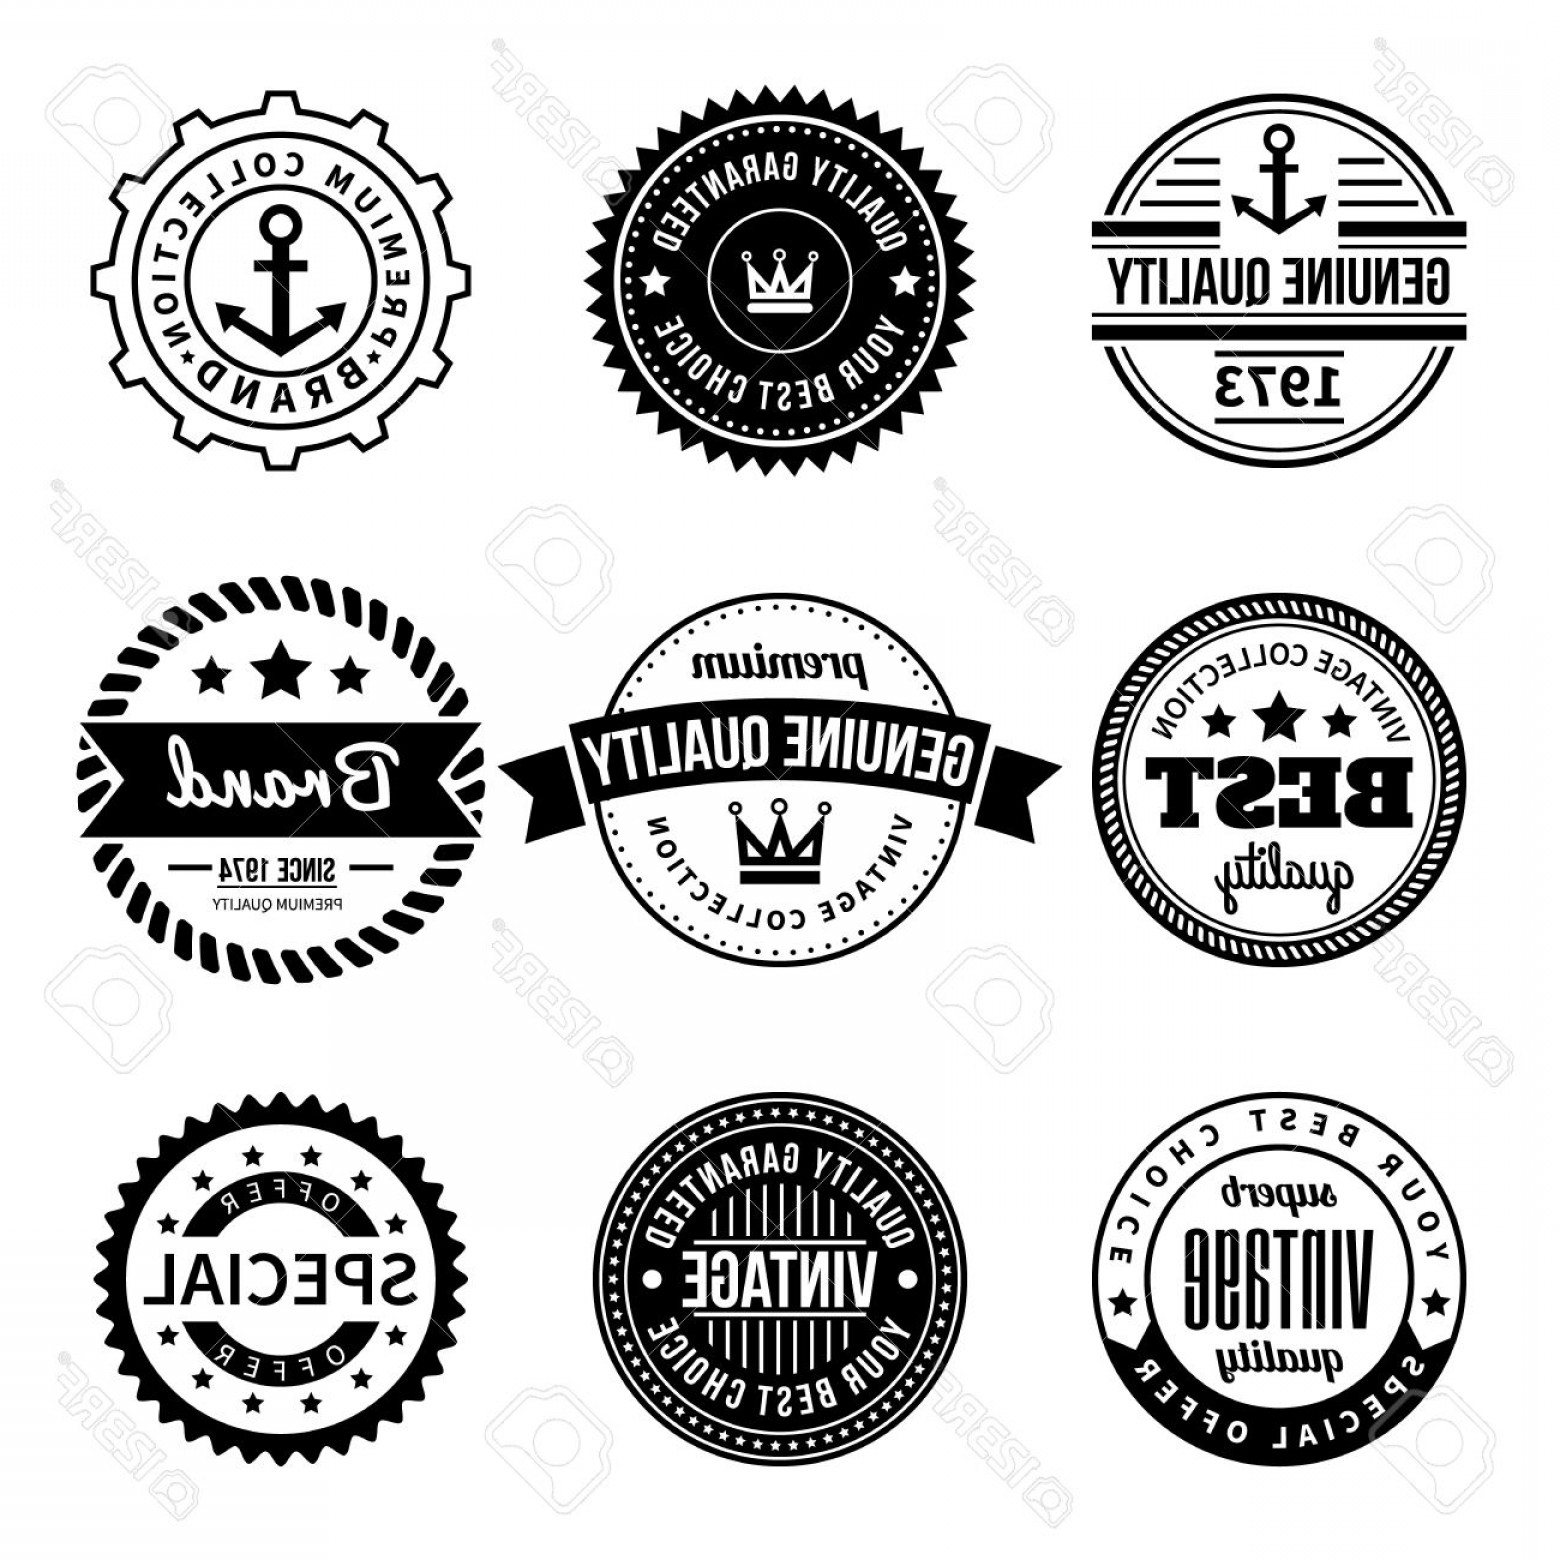 Hipster Vector Ribbon: Photostock Vector Set Of Vintage Vector Labels And Badges Hipster Style With Anchor Crown Star Rope Ribbon Design Elem